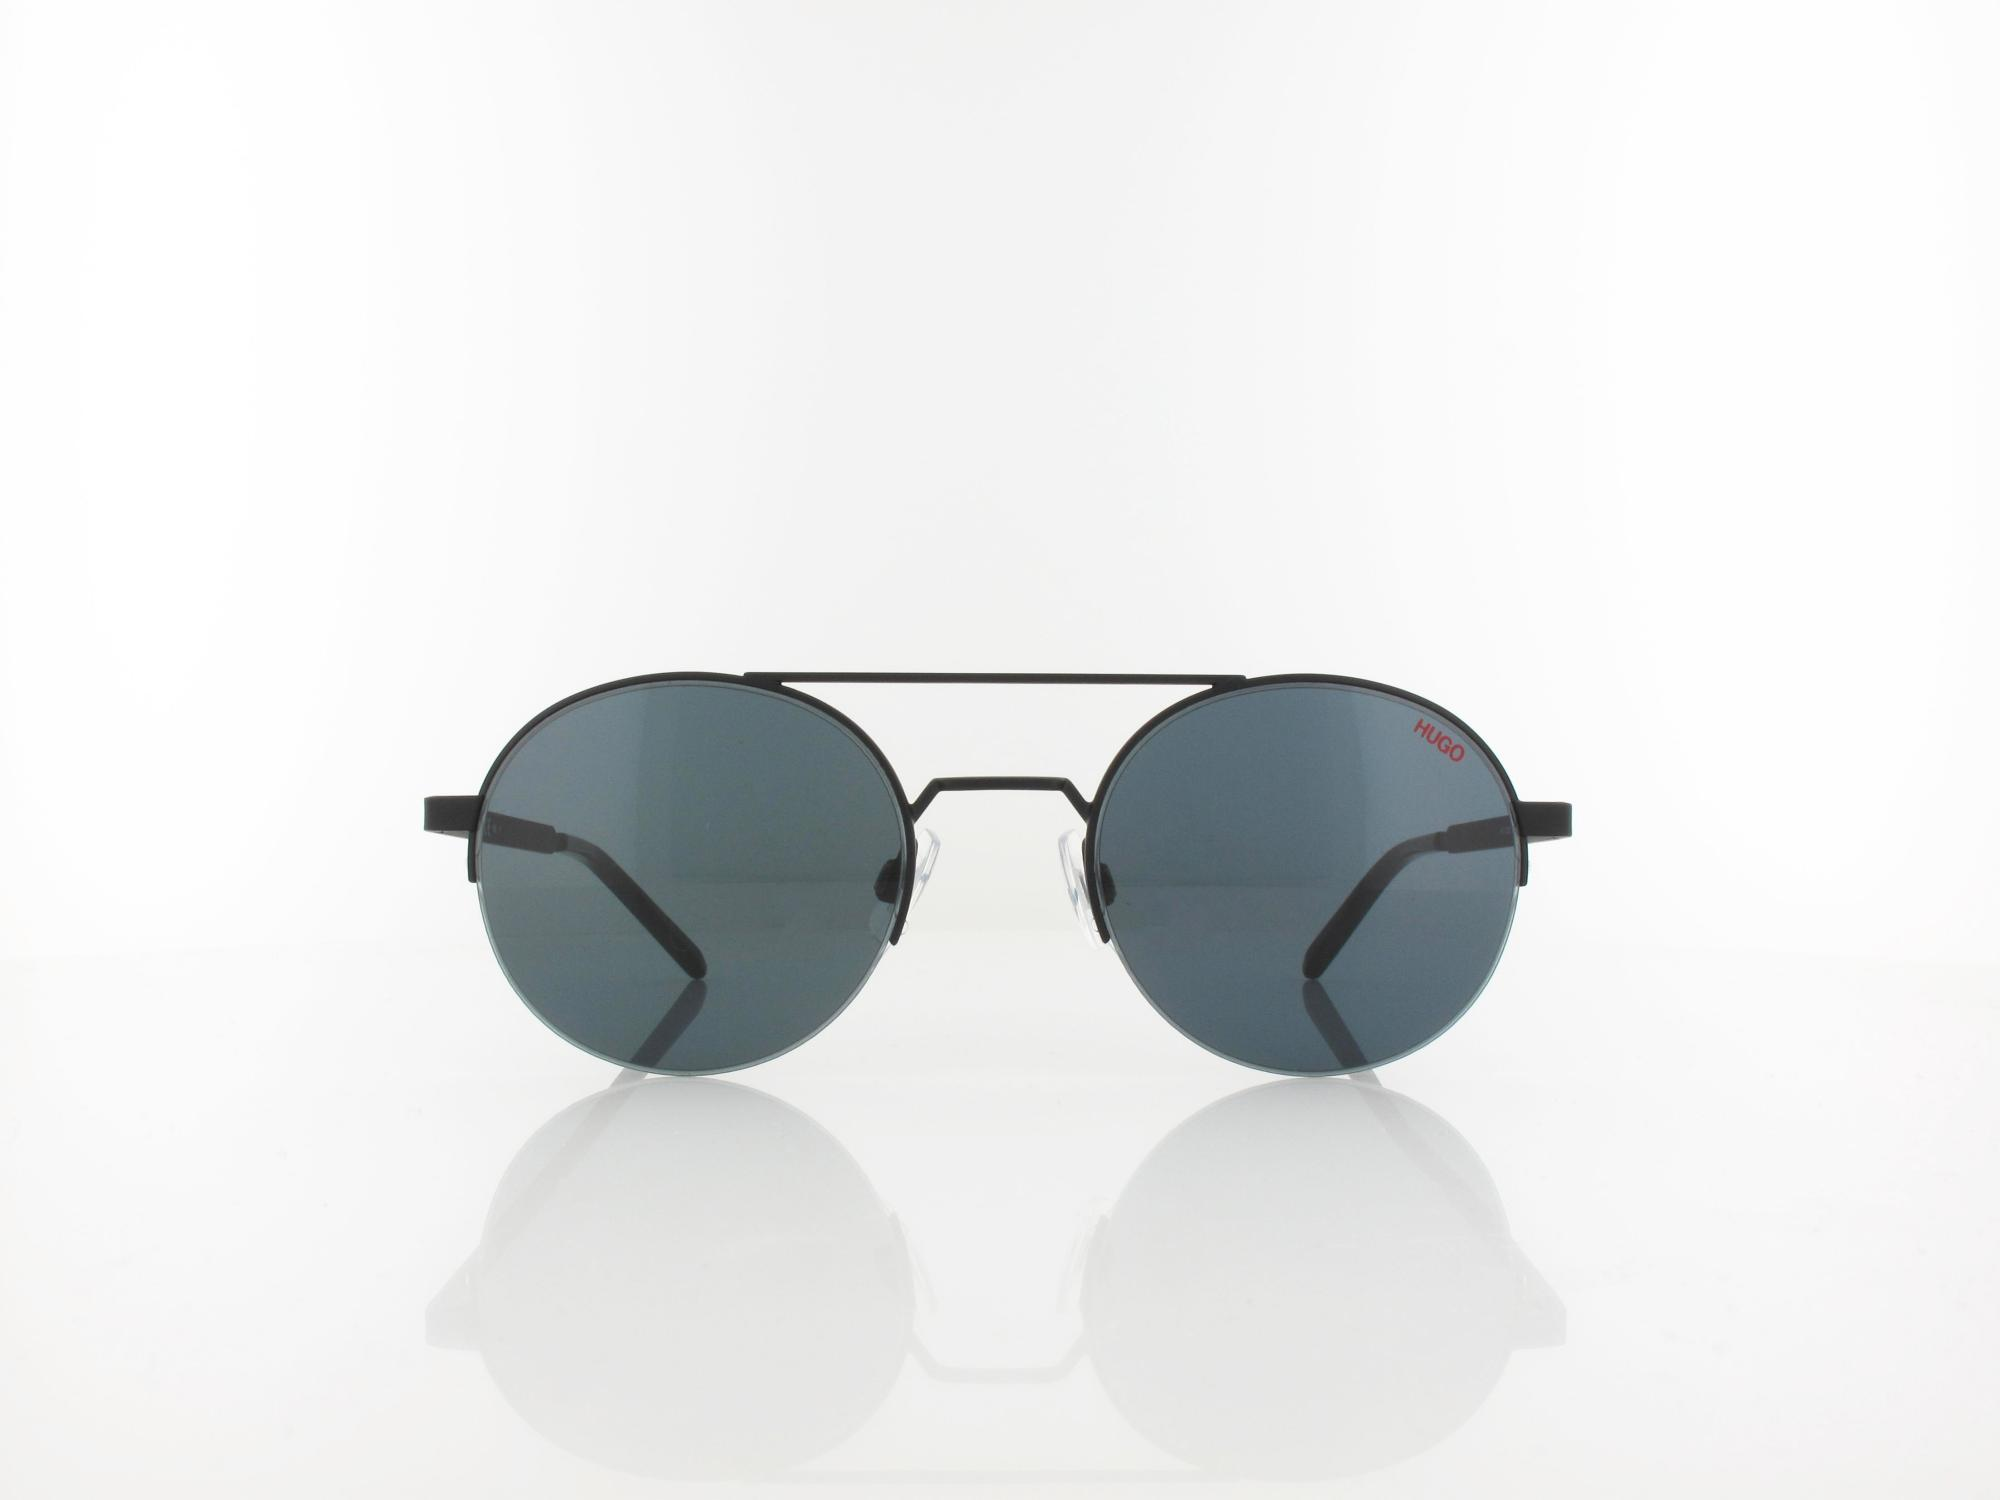 Hugo | HG 1032/S 003/IR 53 | matte black / grey